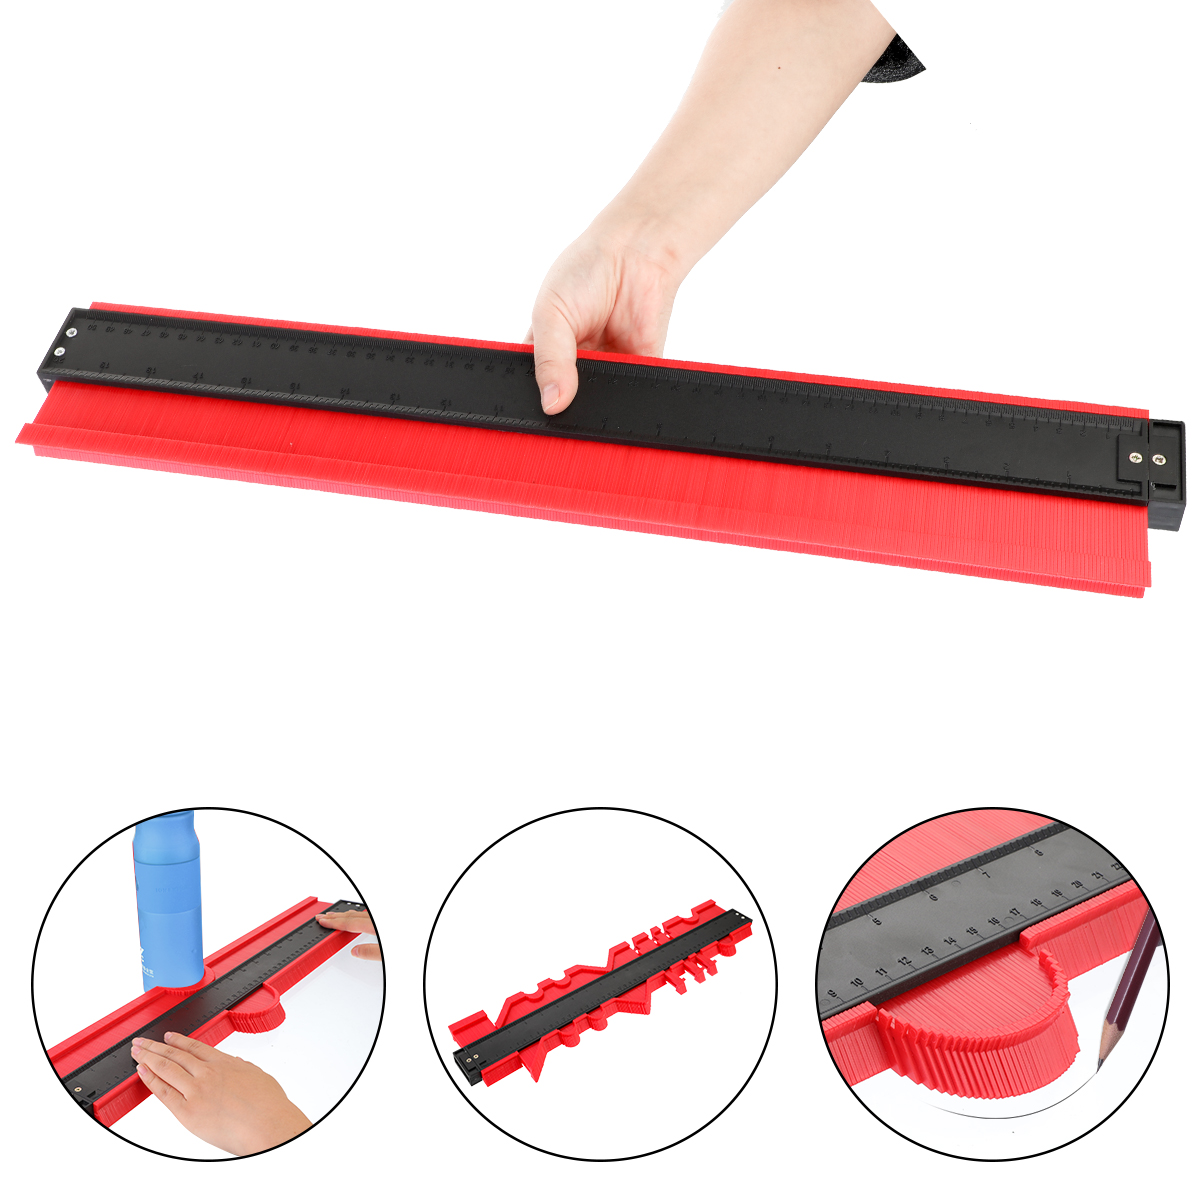 Profile Measuring Tools Deep Duplicator Tiling Laminate Woodworking Multi-functional Irregular Plastic Gauge Contour Gauge Ruled